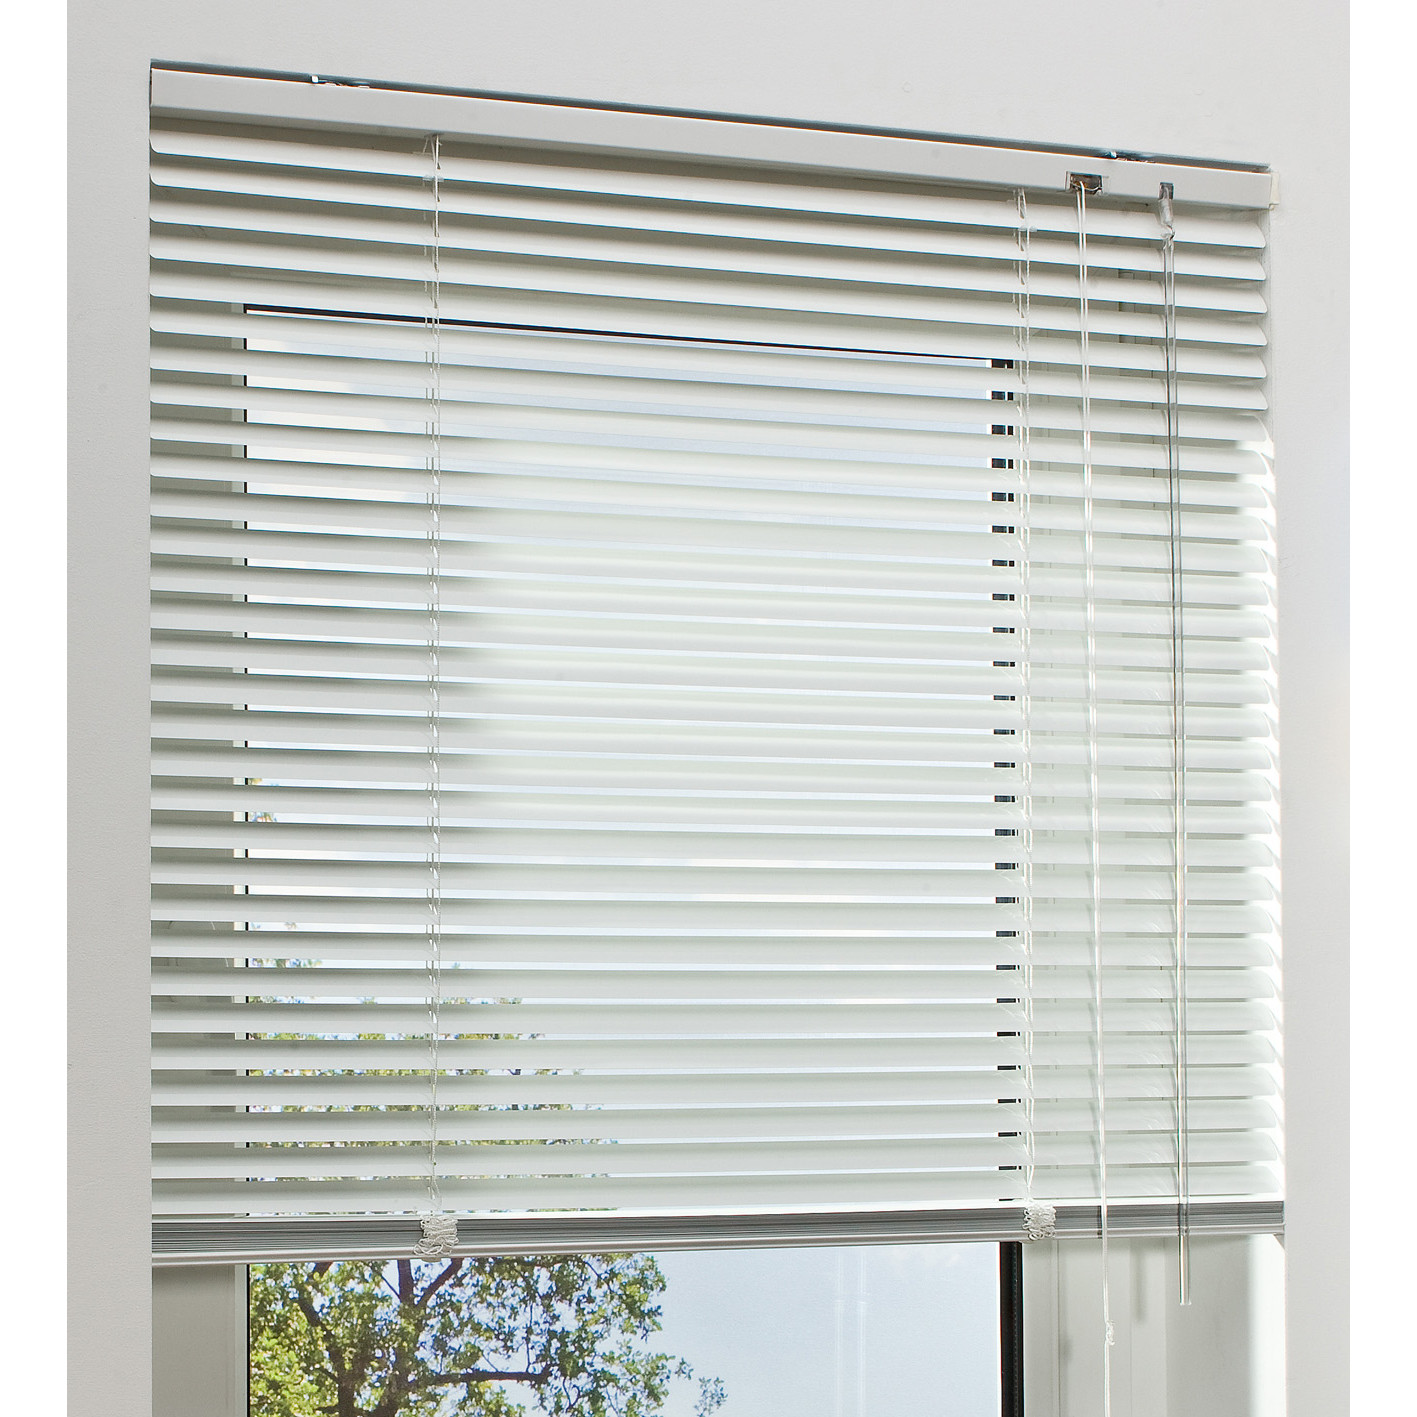 Excellent Menards Window Blinds for Best Window Blind Ideas: Menards Website | Nearest Menards | Menards Window Blinds